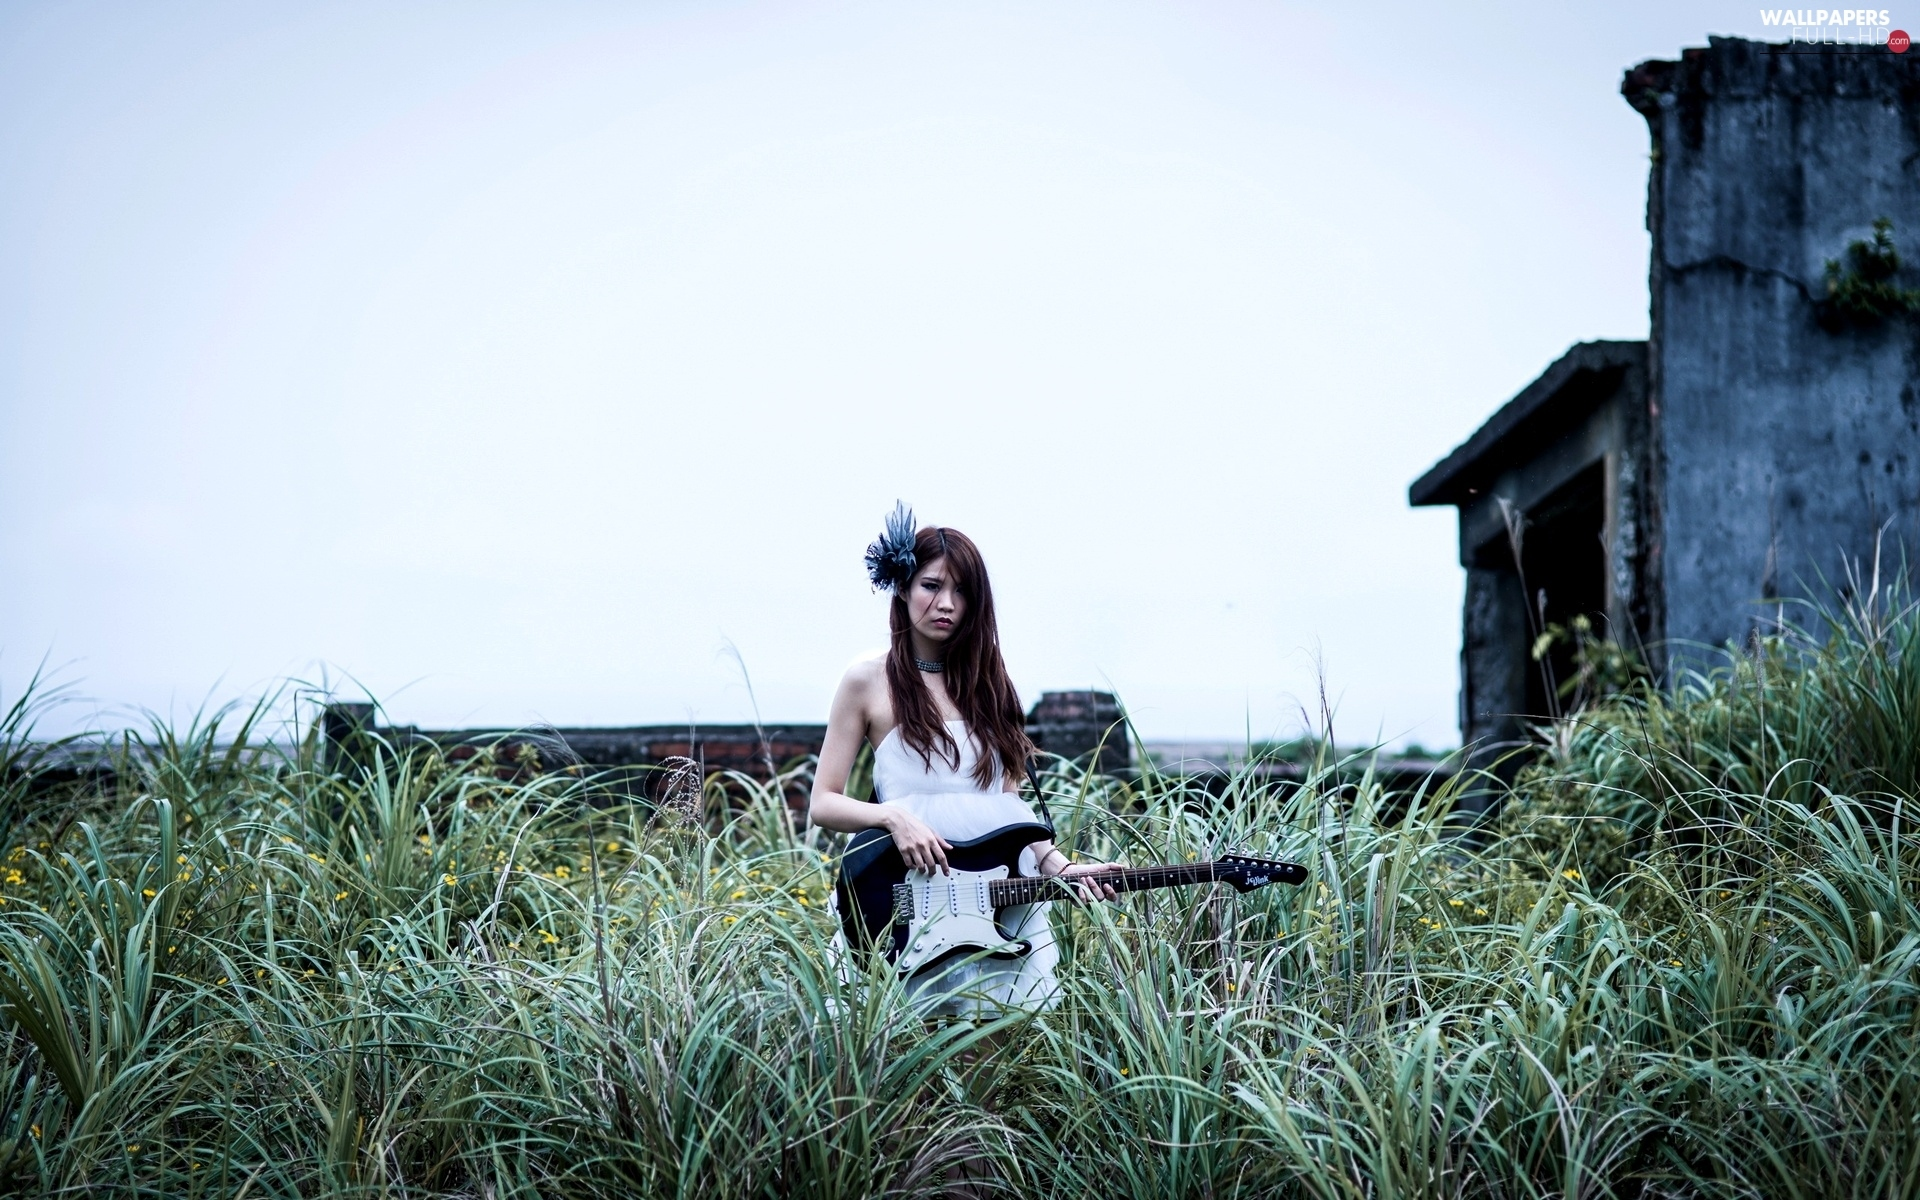 Women, grass, Guitar